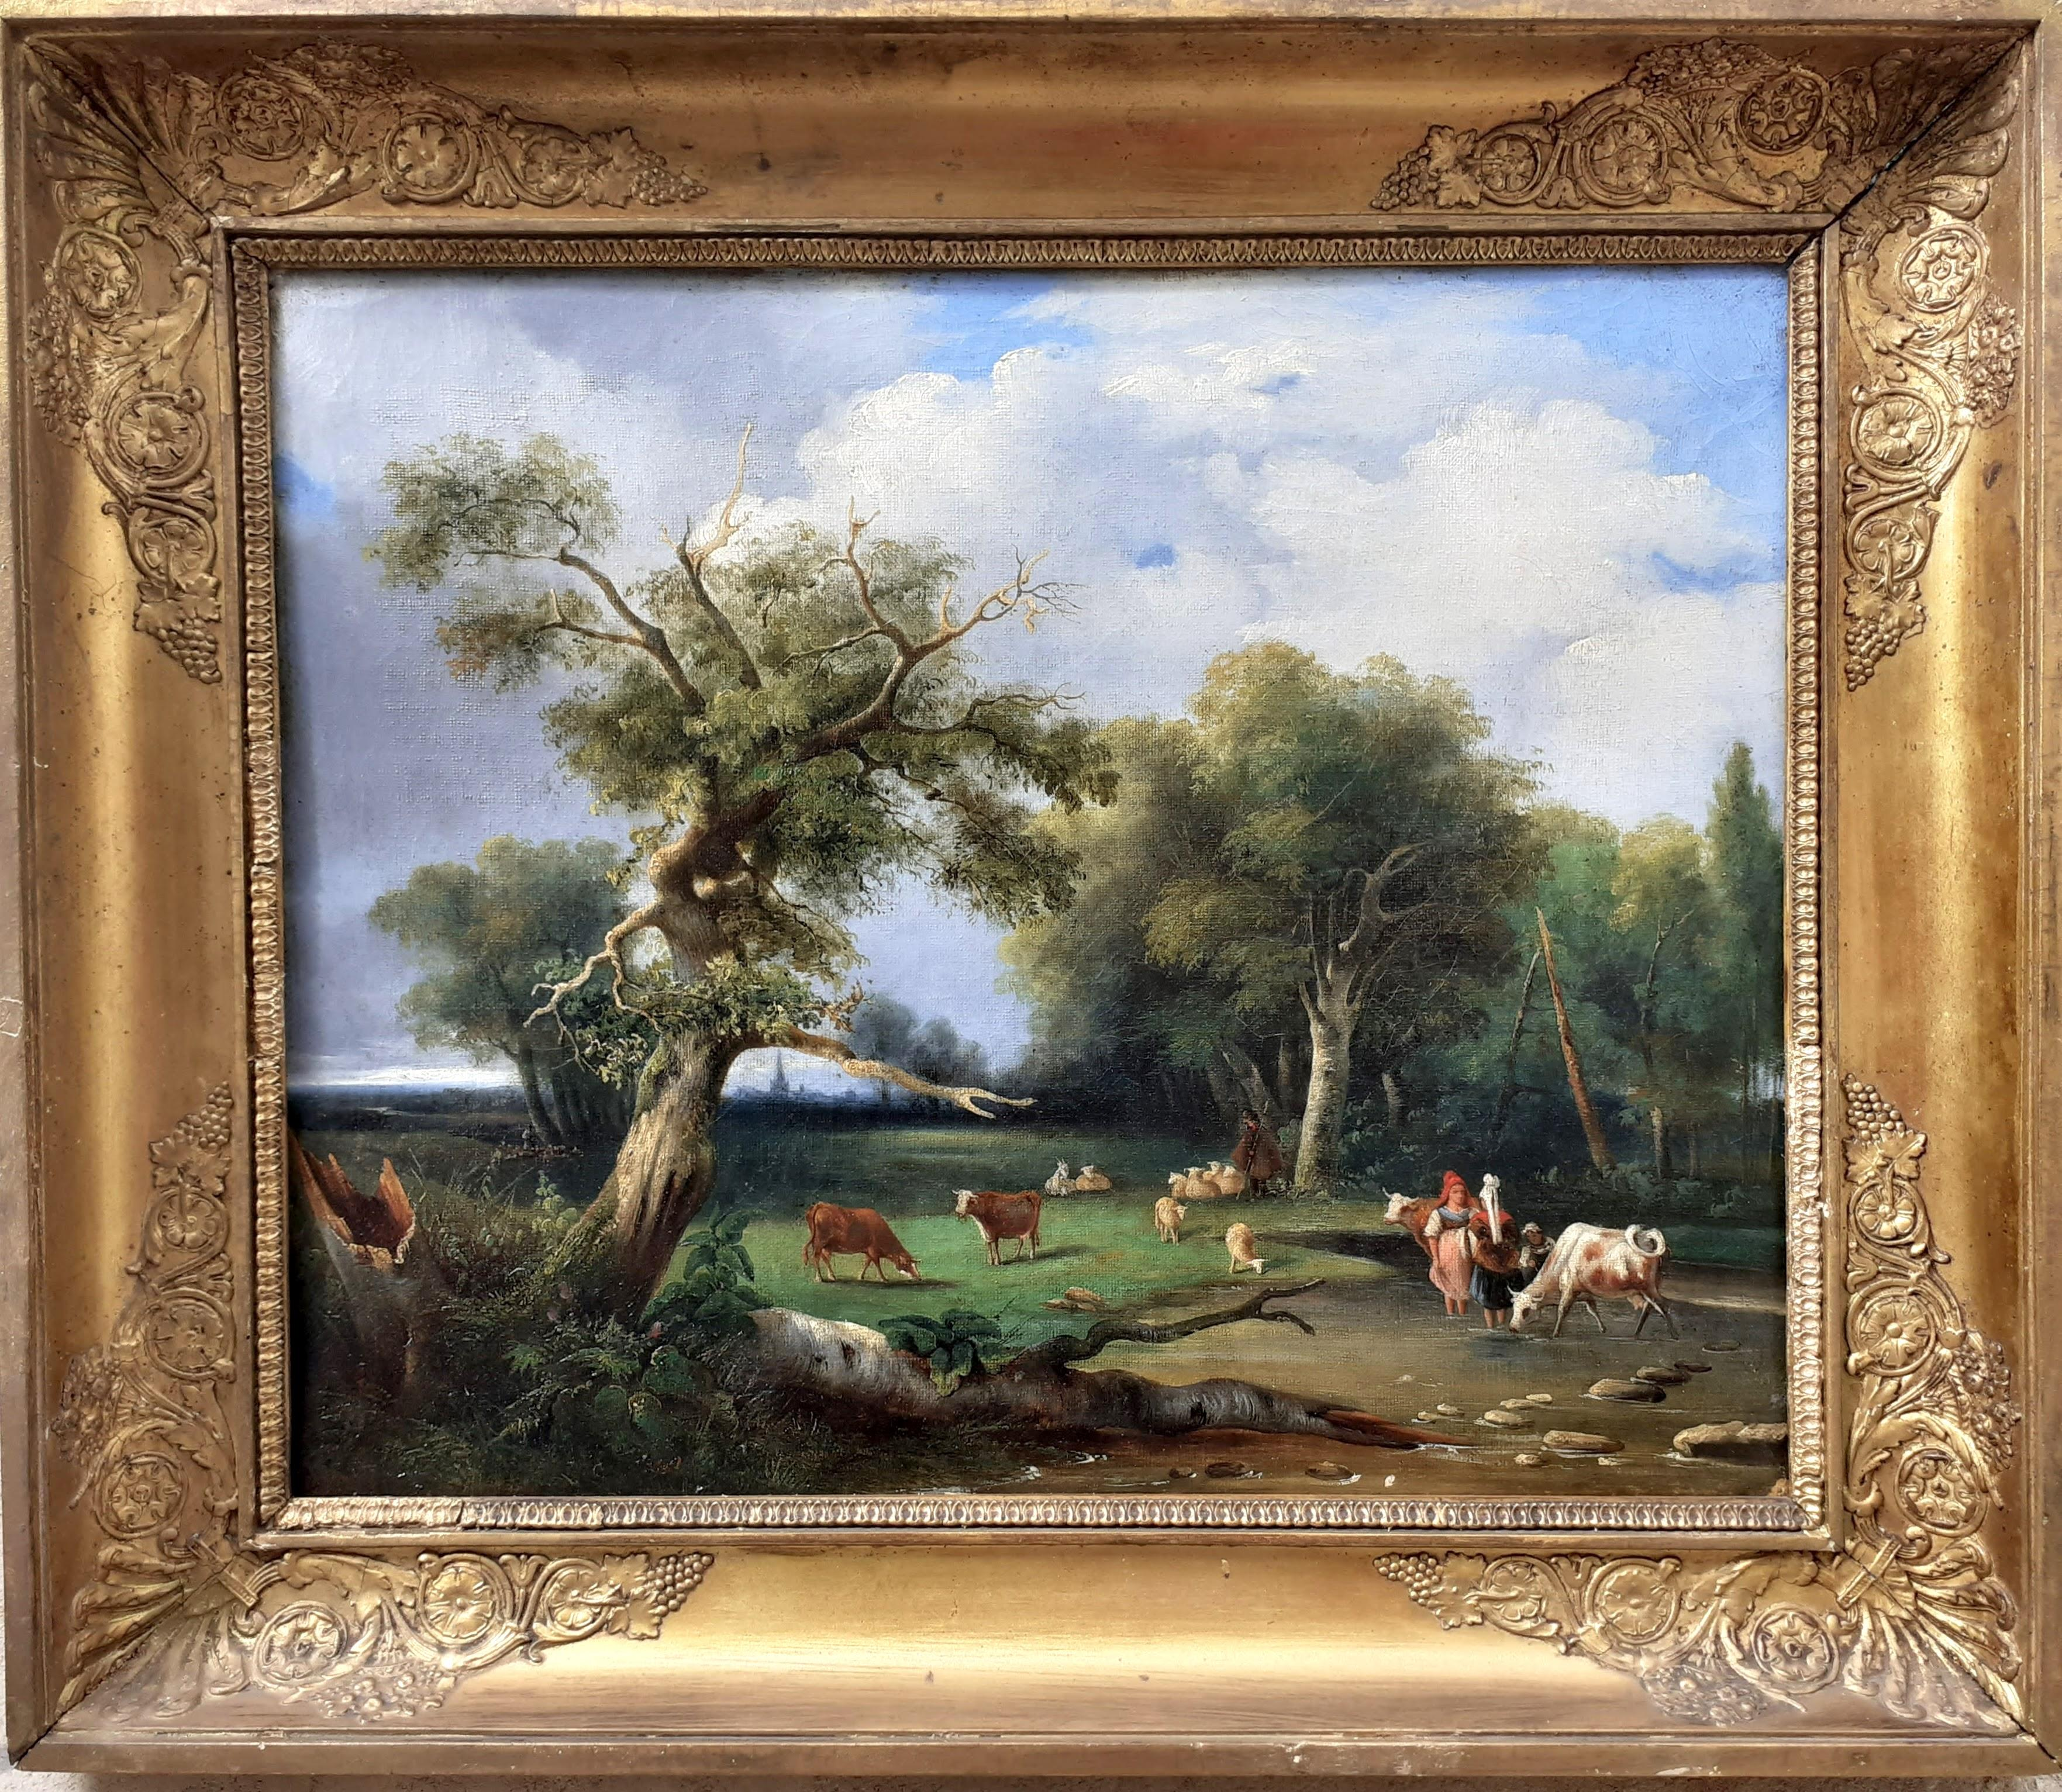 early 1800s ideal Arcadian landscape with figures, trees, animals oil painting